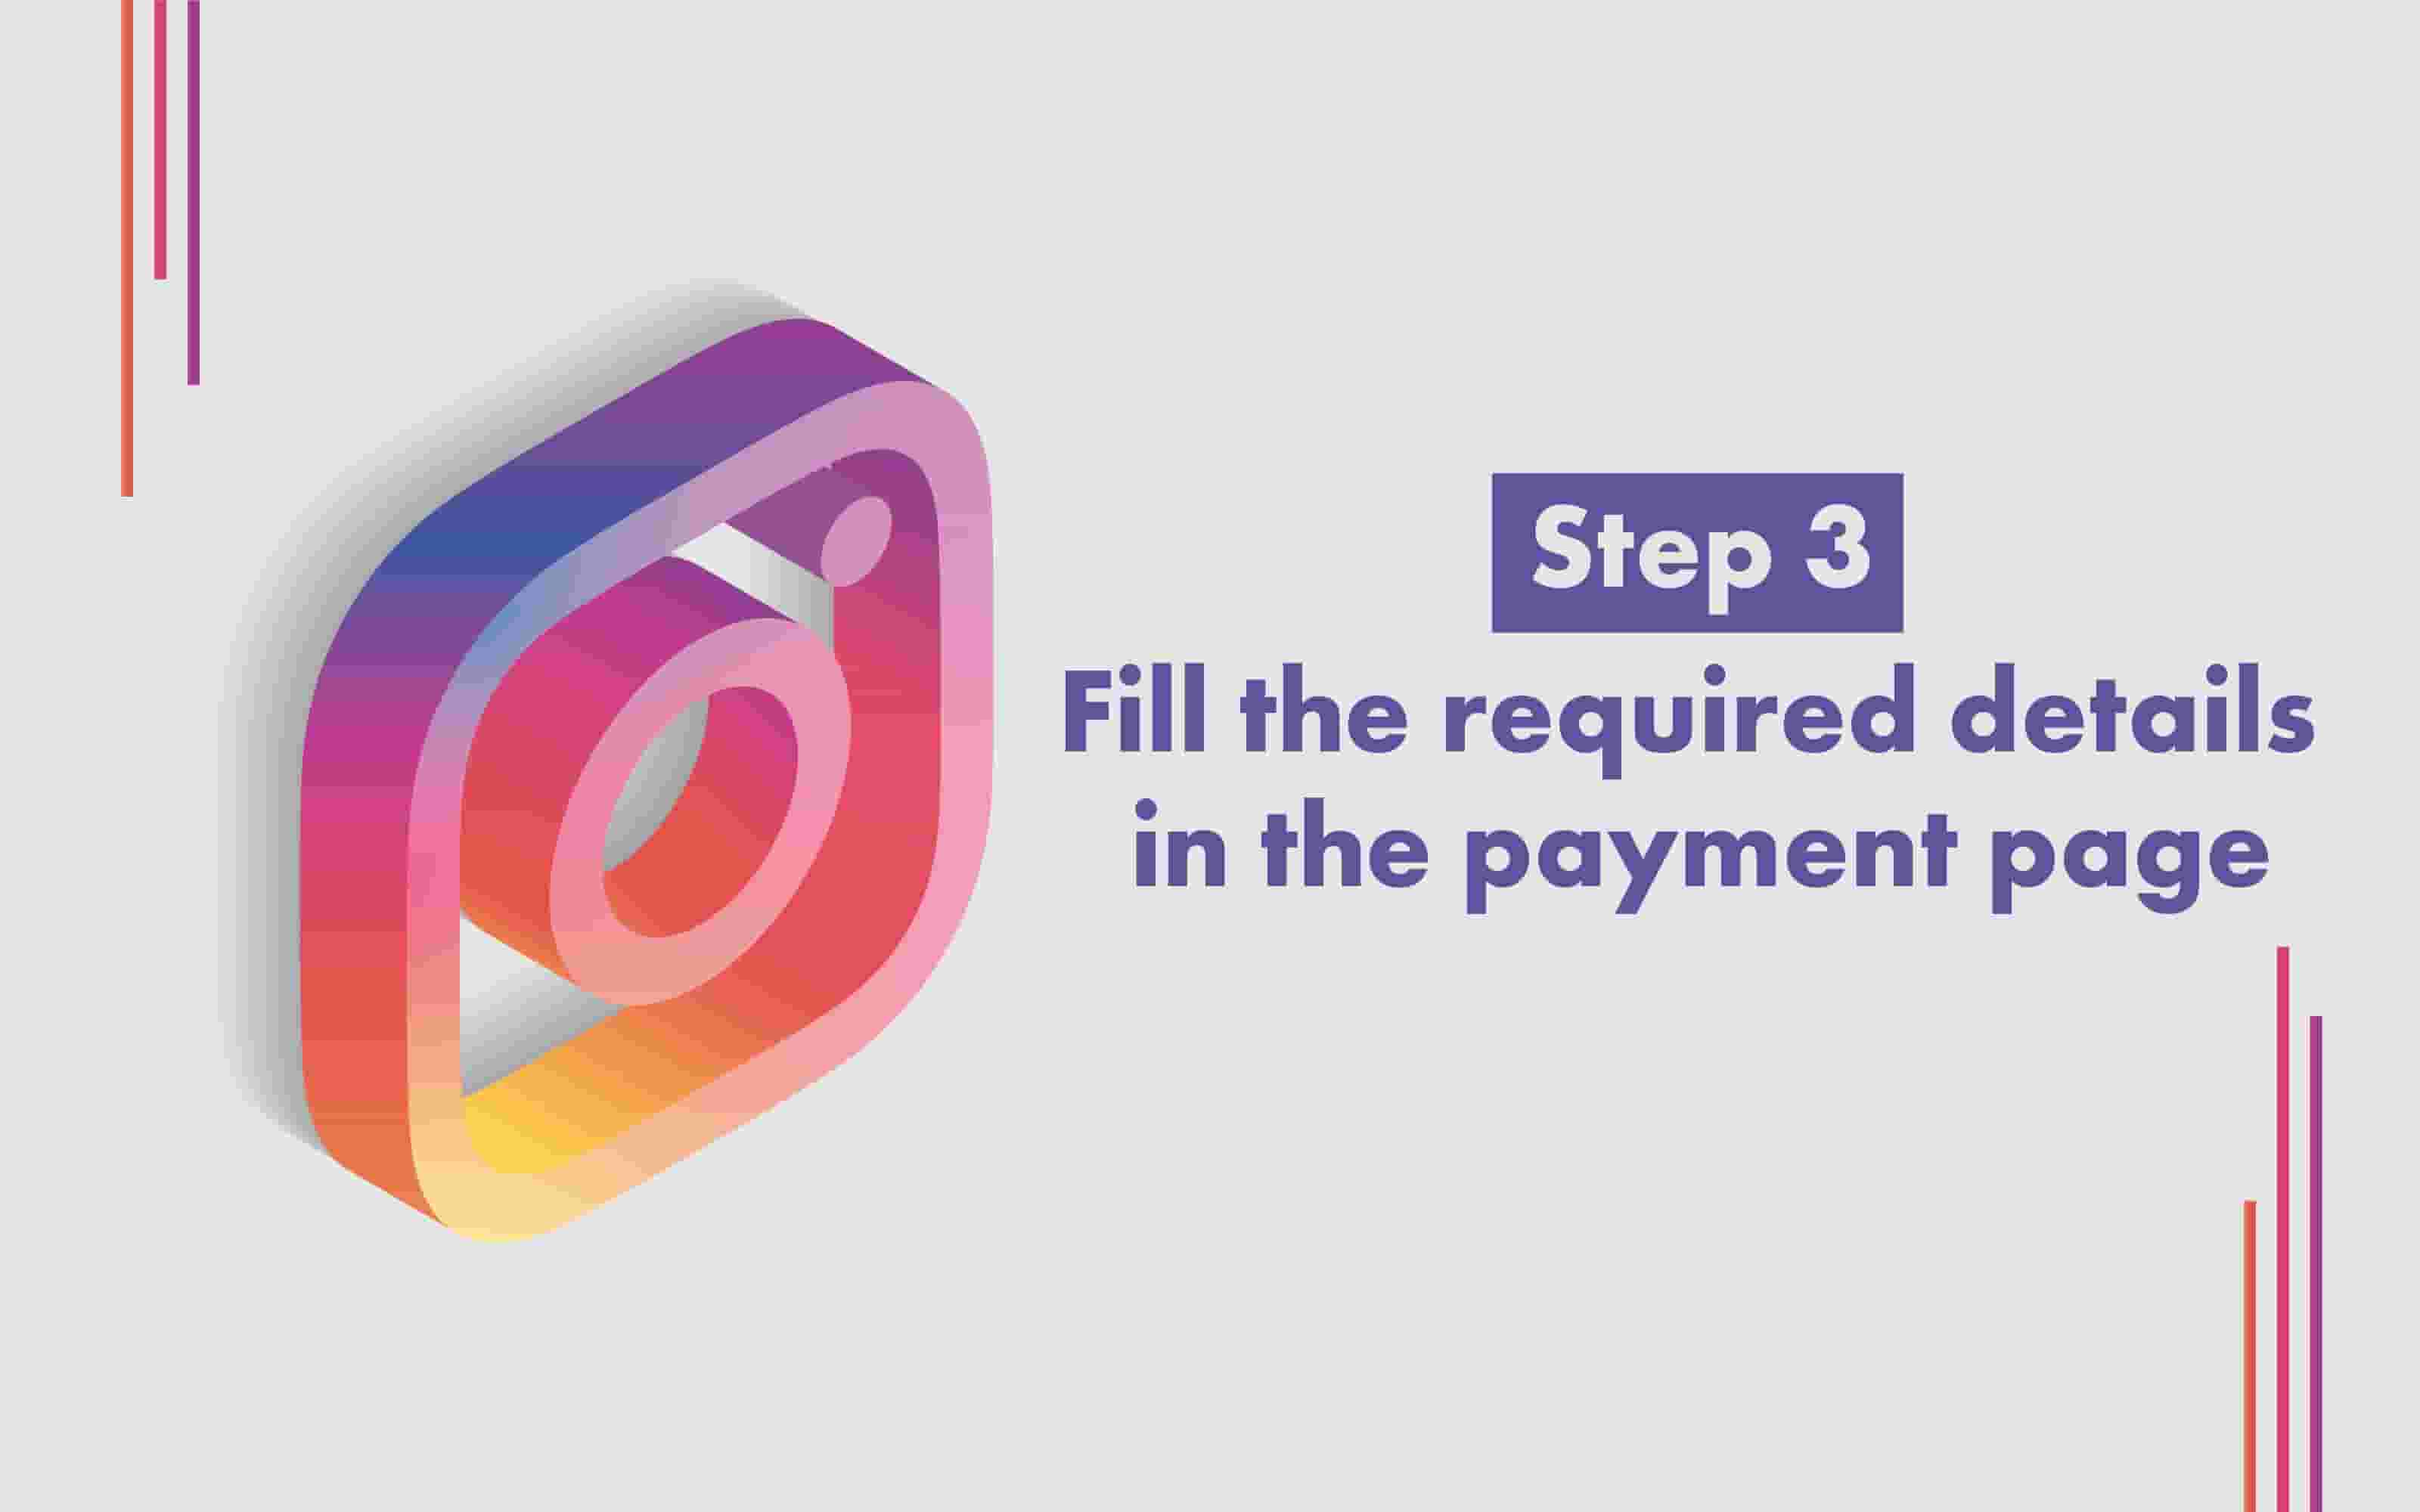 How to Buy Instagram followers step 3